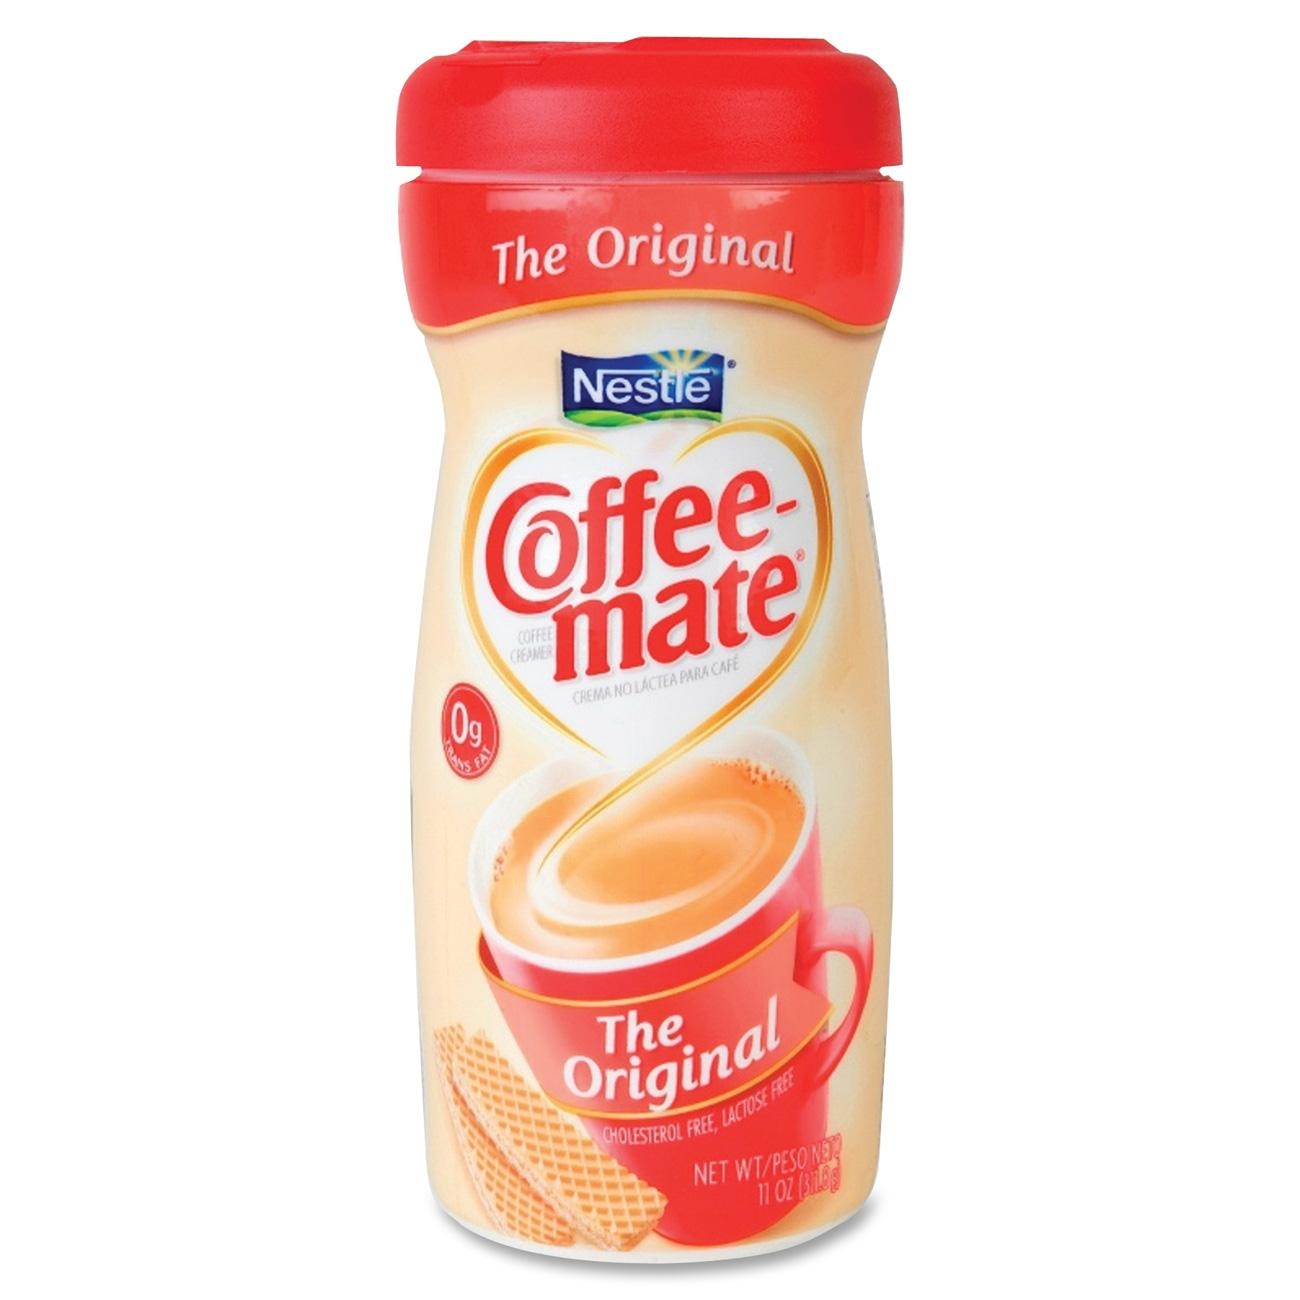 Coffee-mate Powdered Non-Dairy Creamer, Original, 56 oz. Enter your email to receive great offers from Costco Business Delivery.